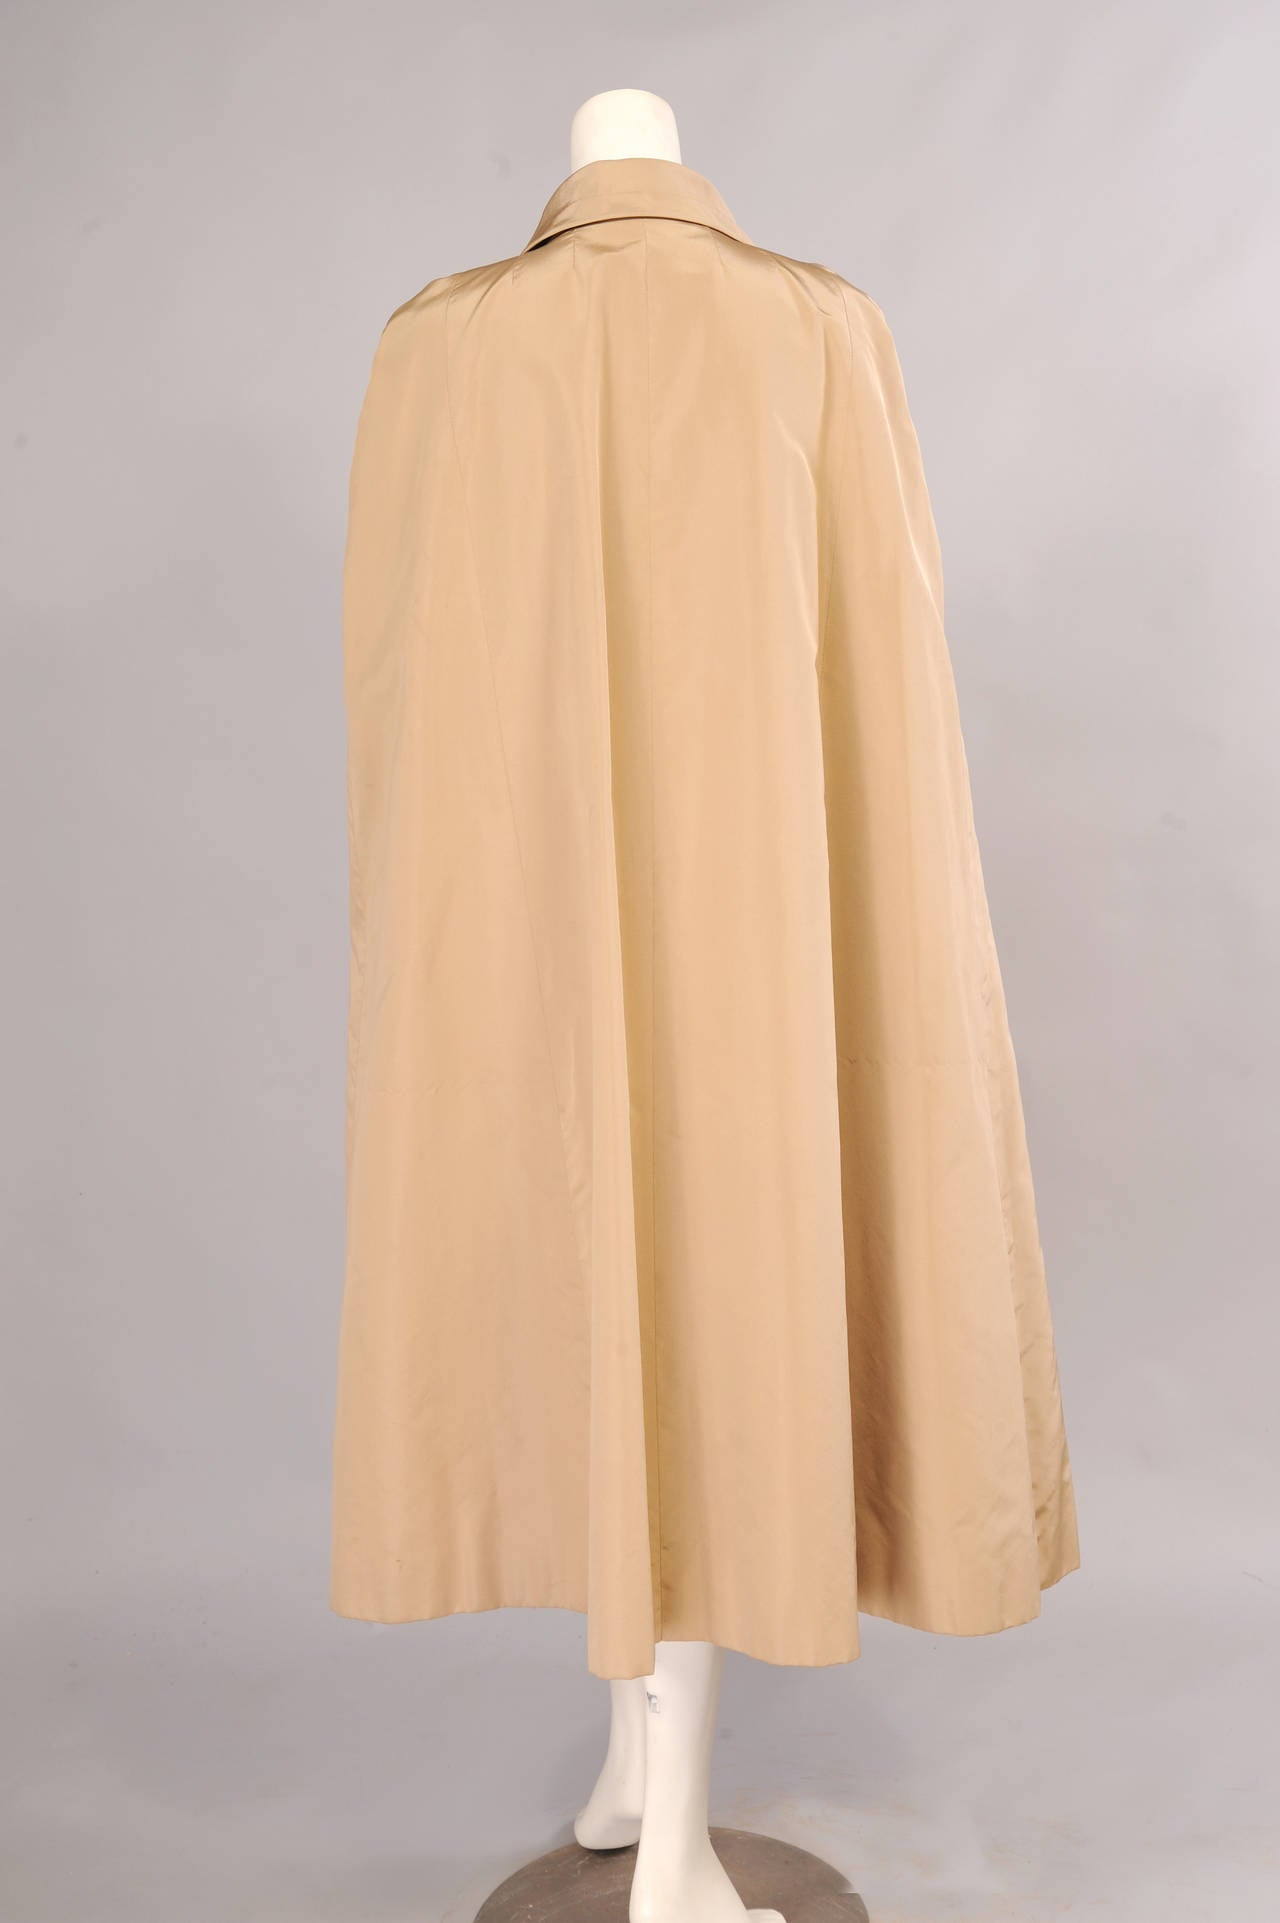 Beige Givenchy Labelled Haute Couture Silk Faille Evening Cape For Sale